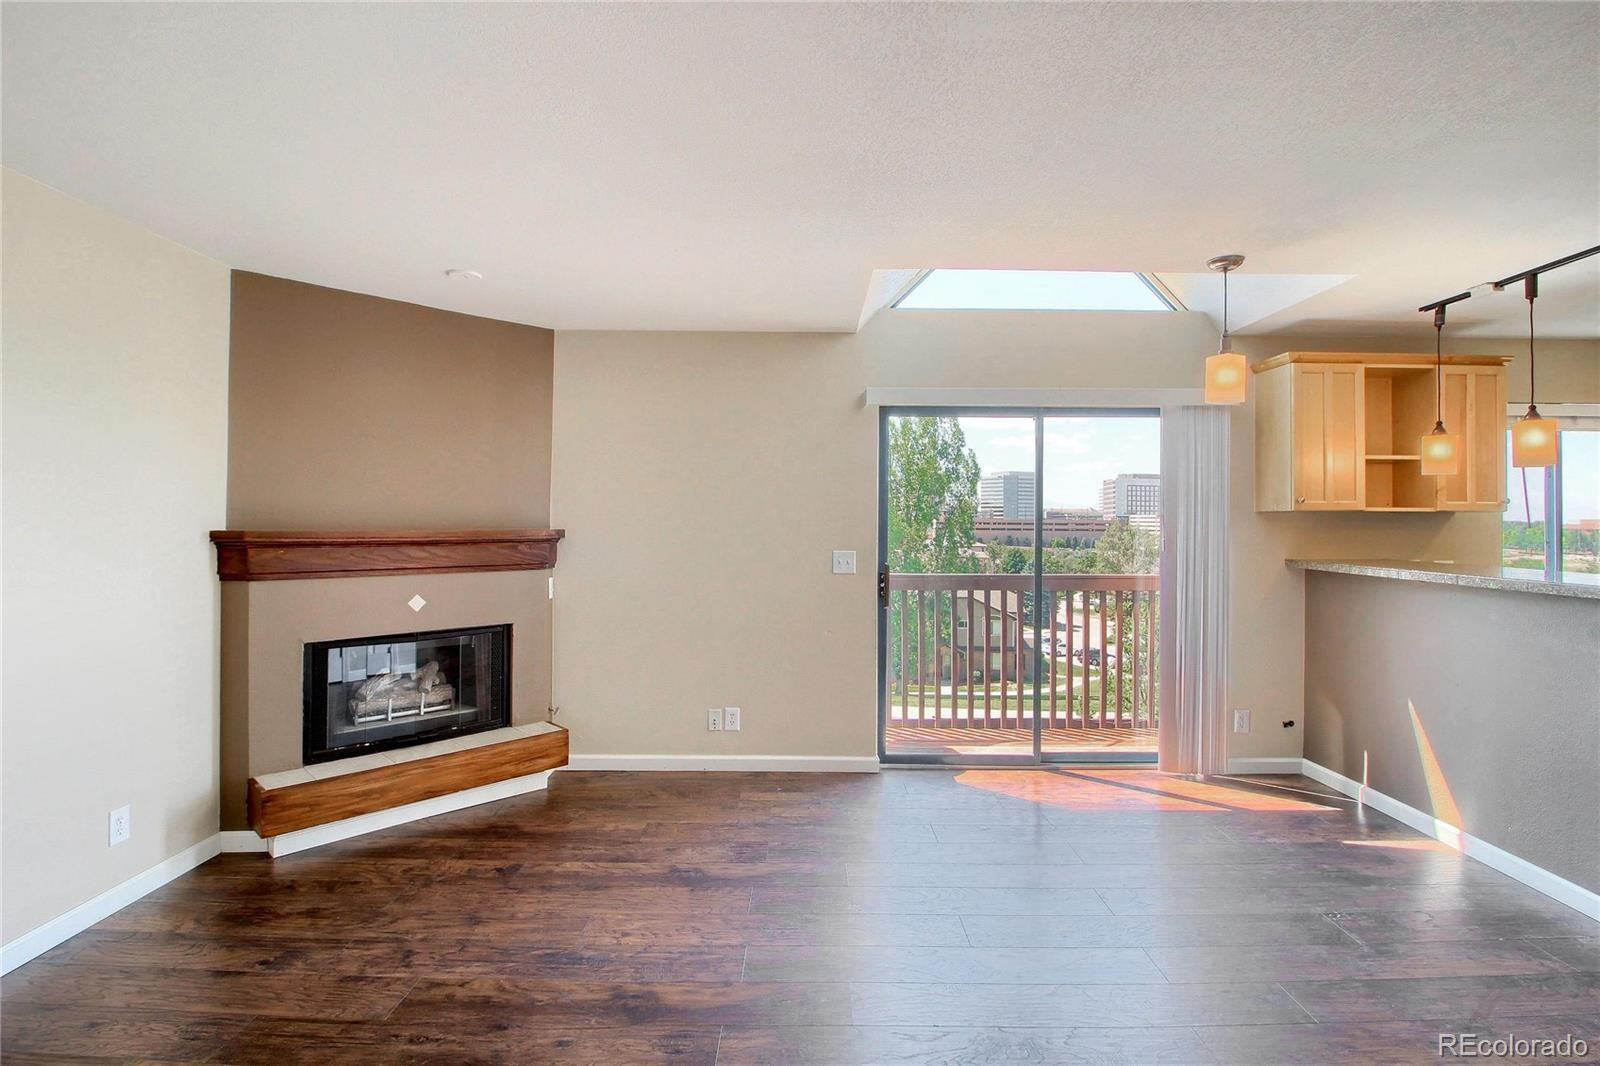 MLS# 5763768 - 11 - 6380 S Boston Street #303, Greenwood Village, CO 80111